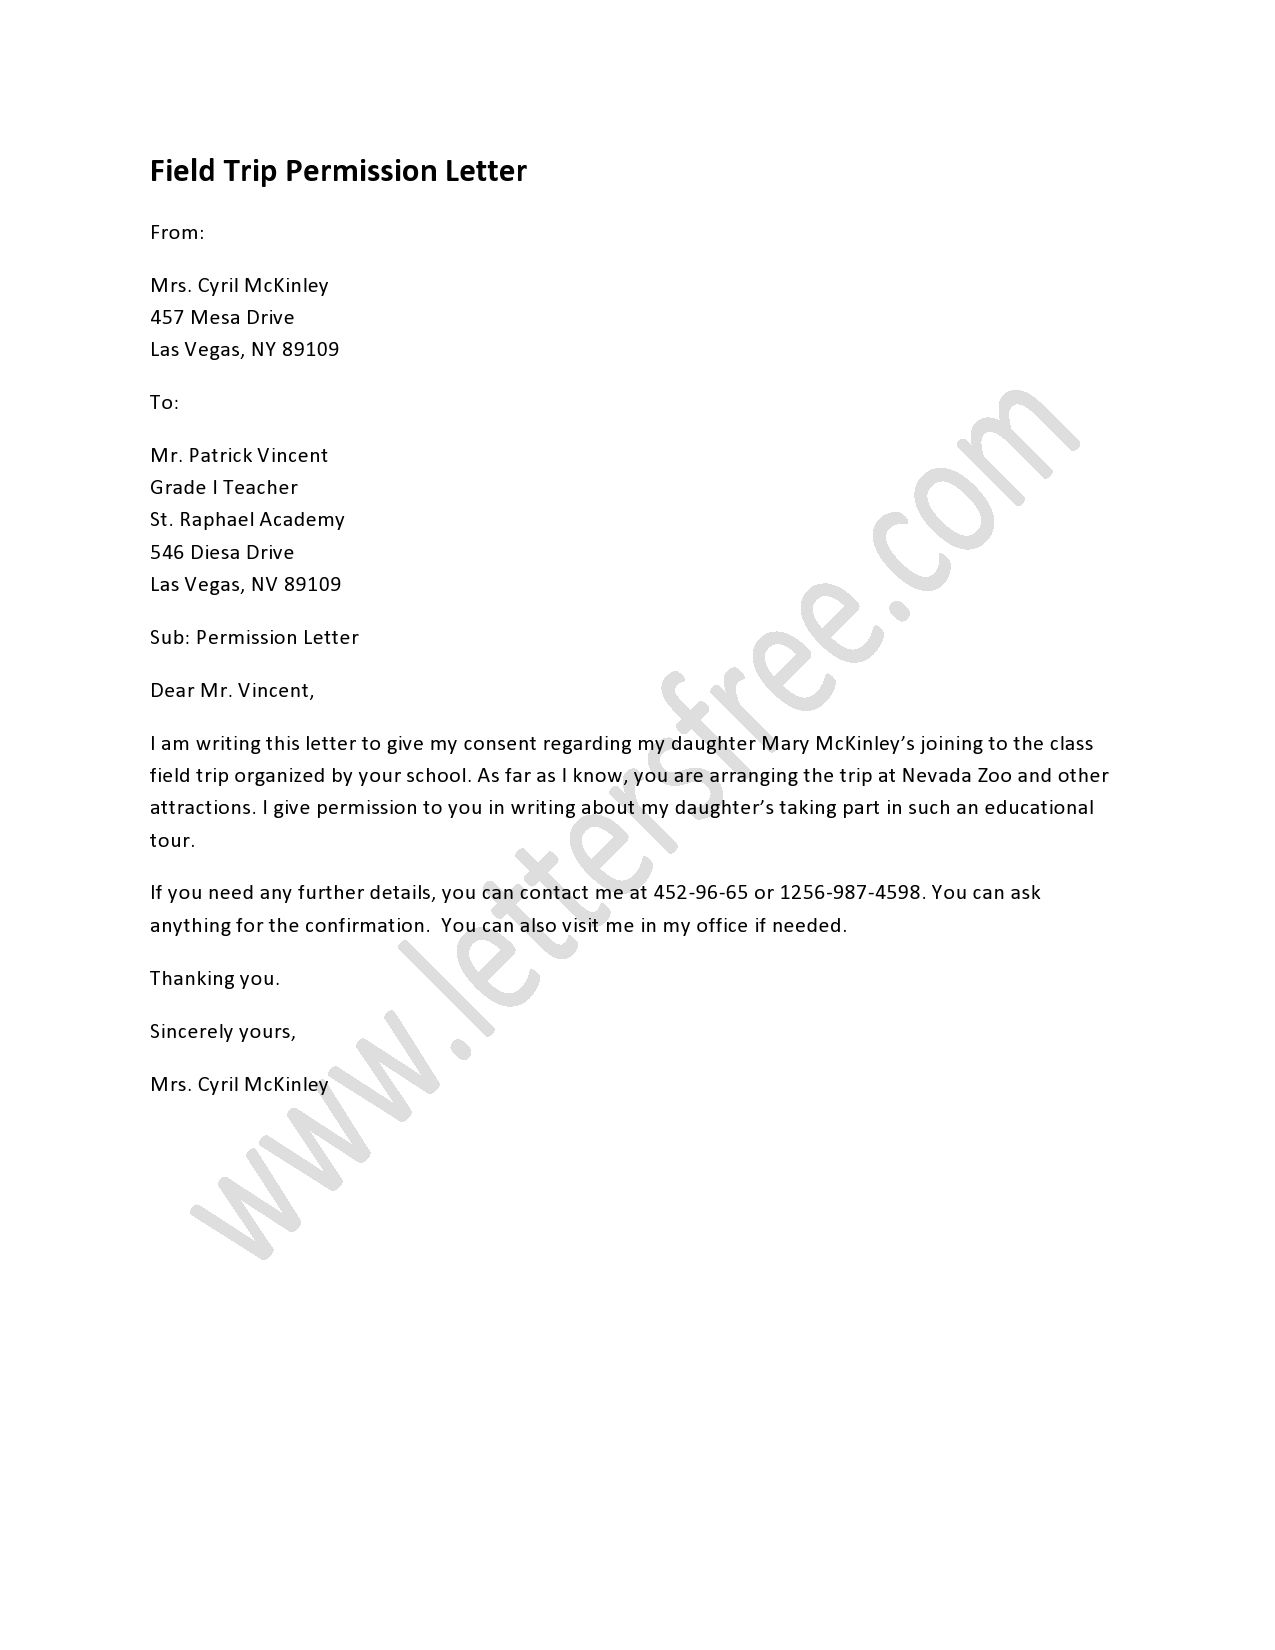 Field Trip Permission Letter Sample Power Of Attorney For Car